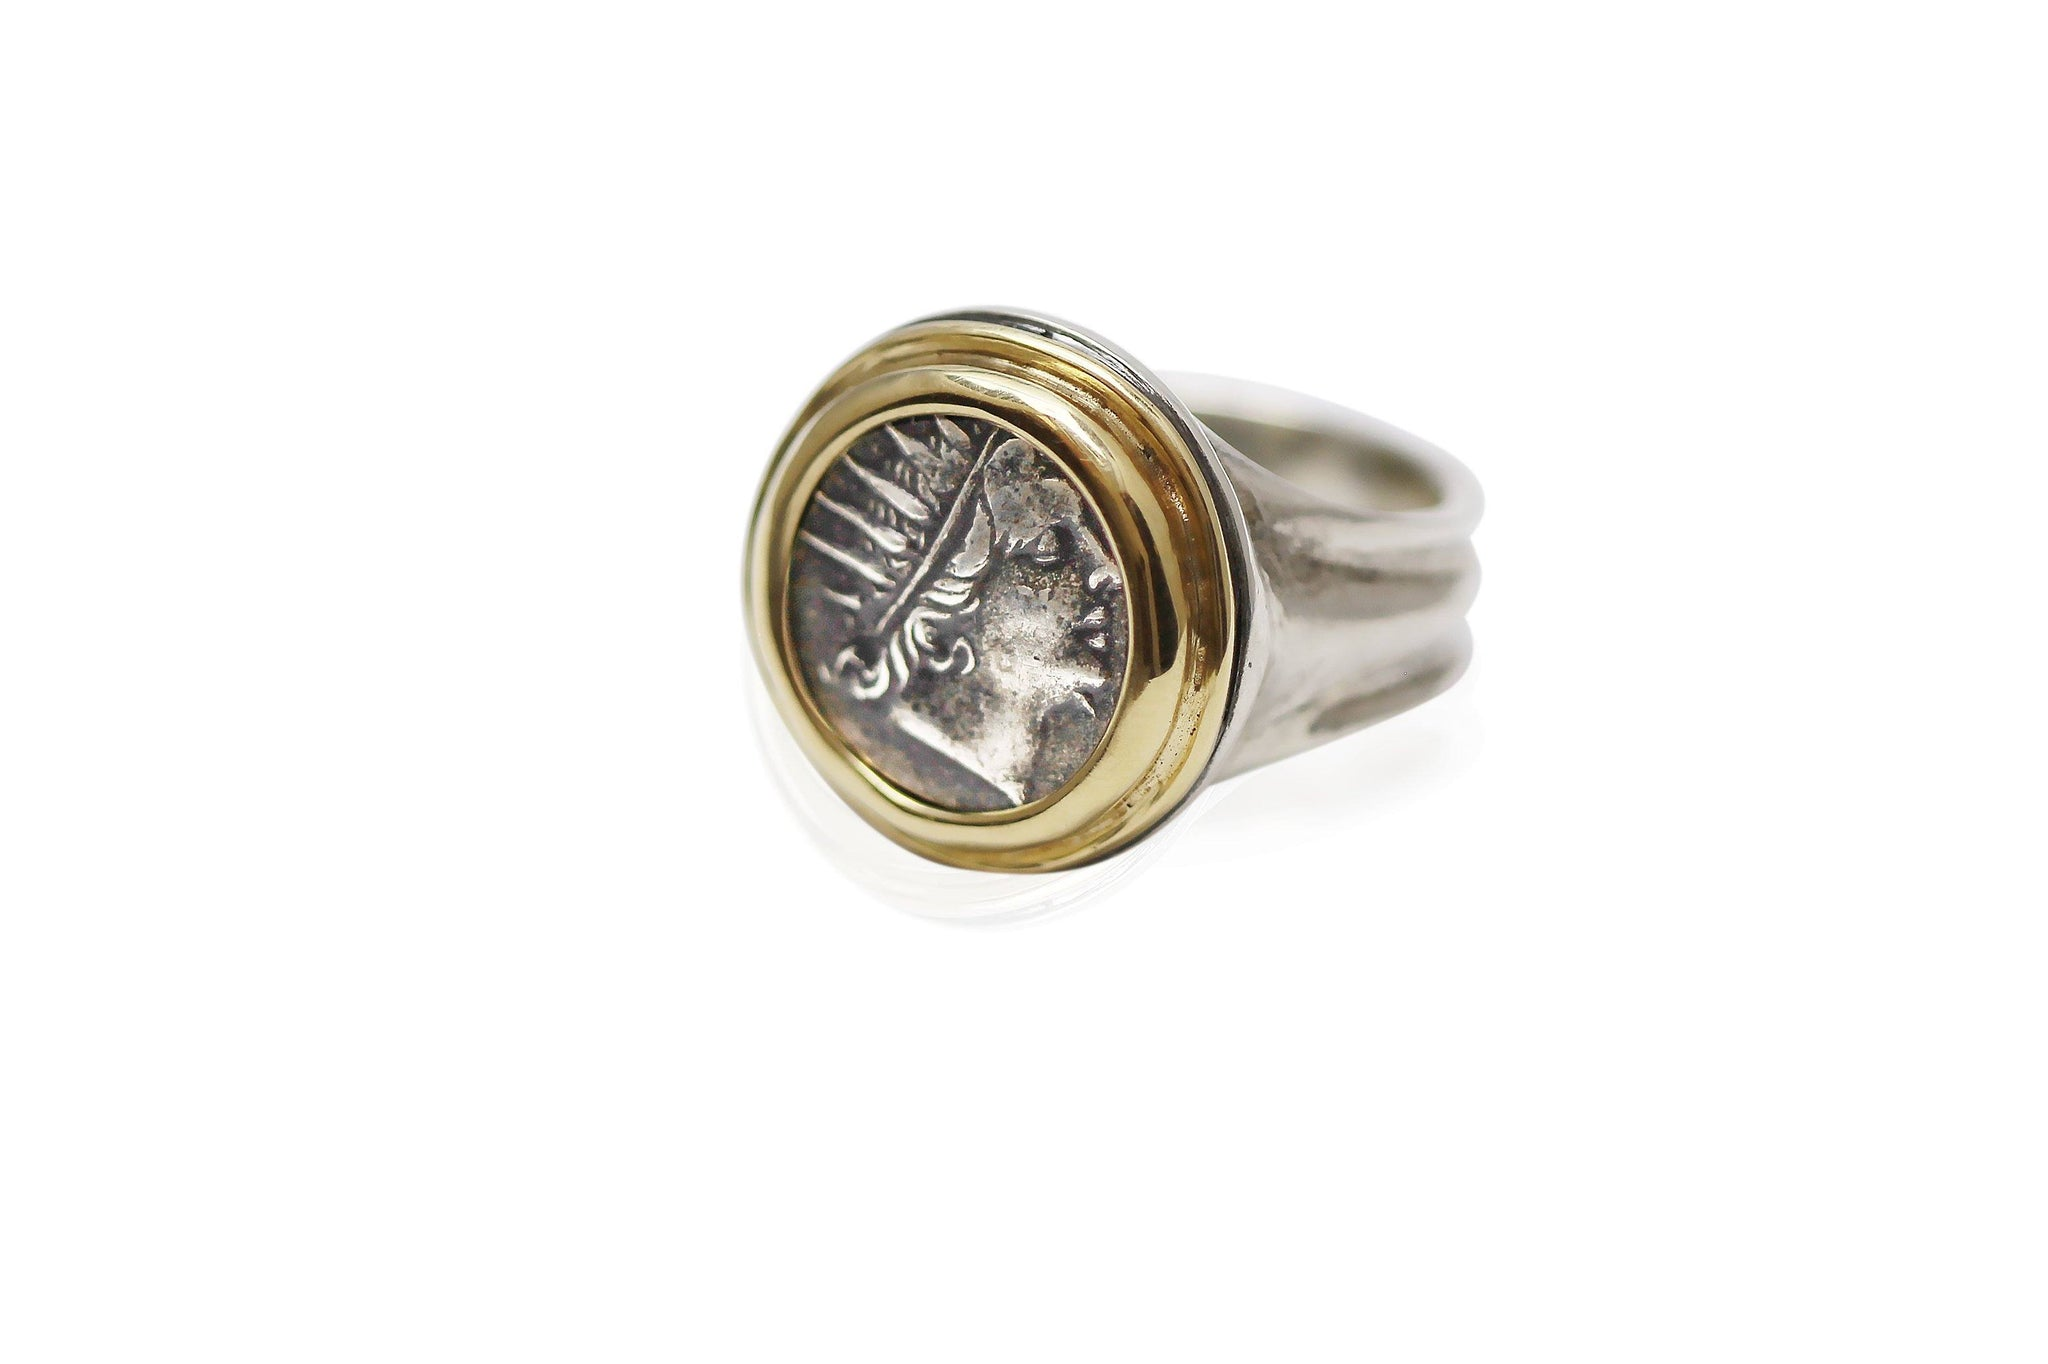 18K Gold Bezel, Silver Ring, Rhodes Drachm, Helios, 6753 - Erez Ancient Coin Jewelry